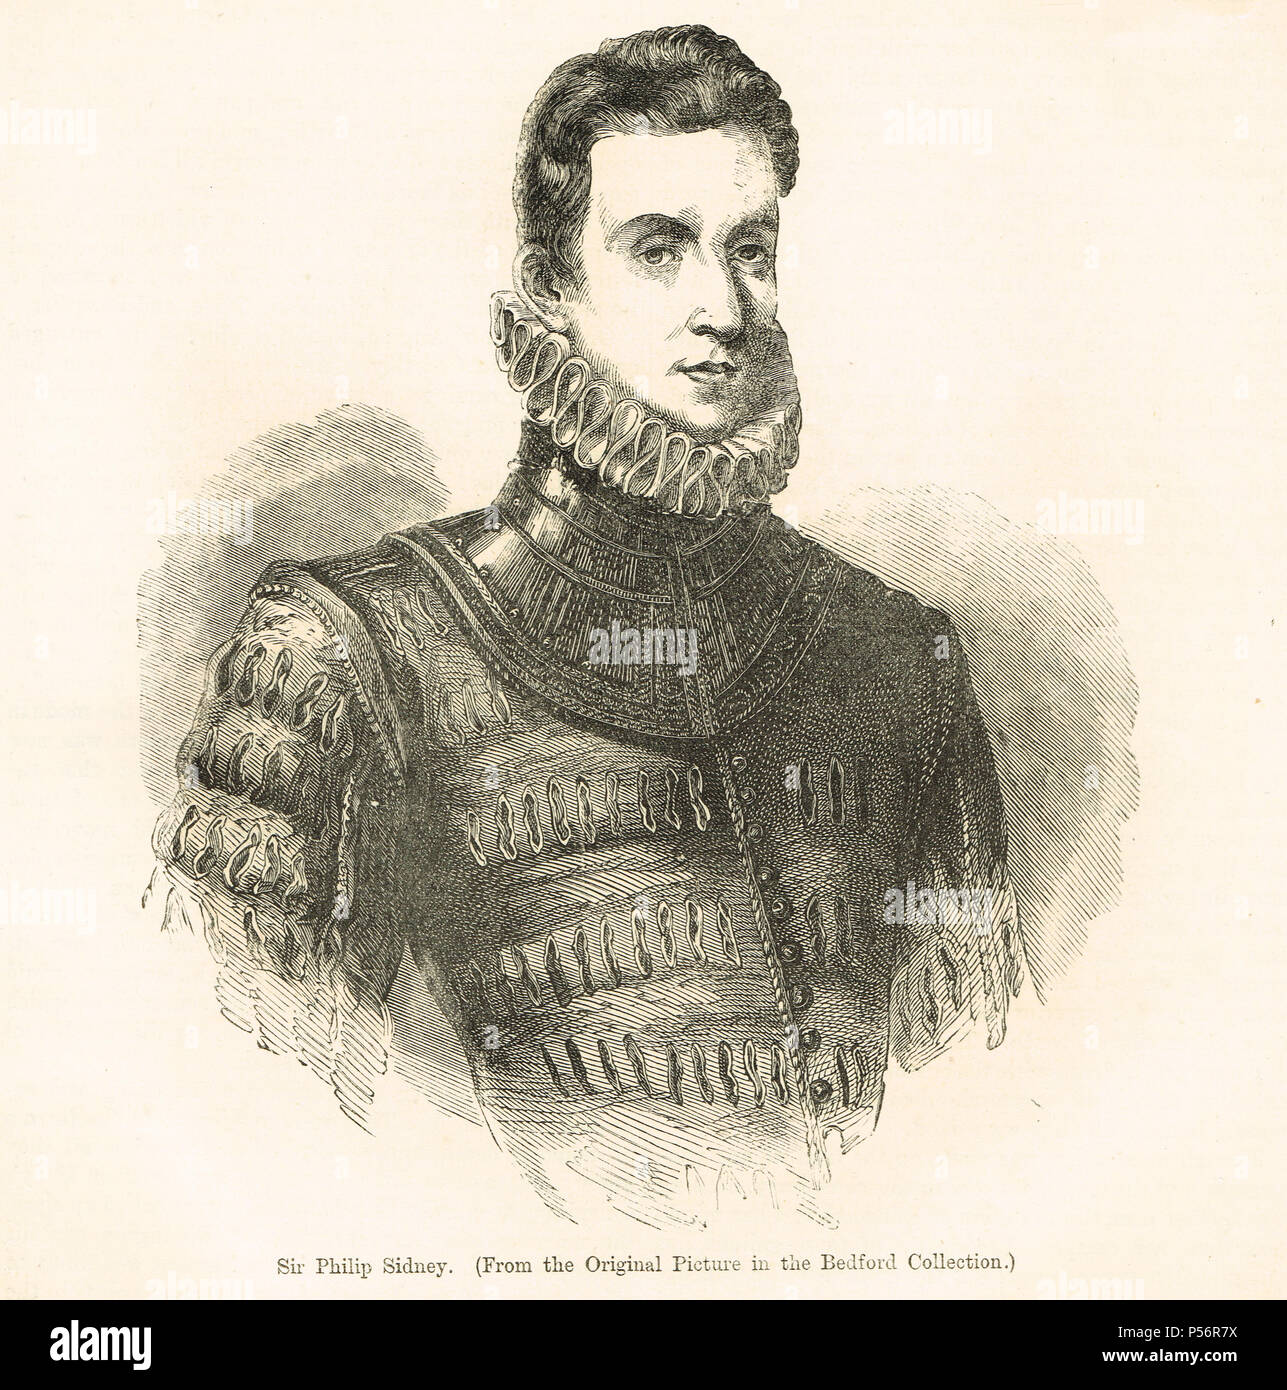 Sir Philip Sidney, English poet, courtier and soldier - Stock Image